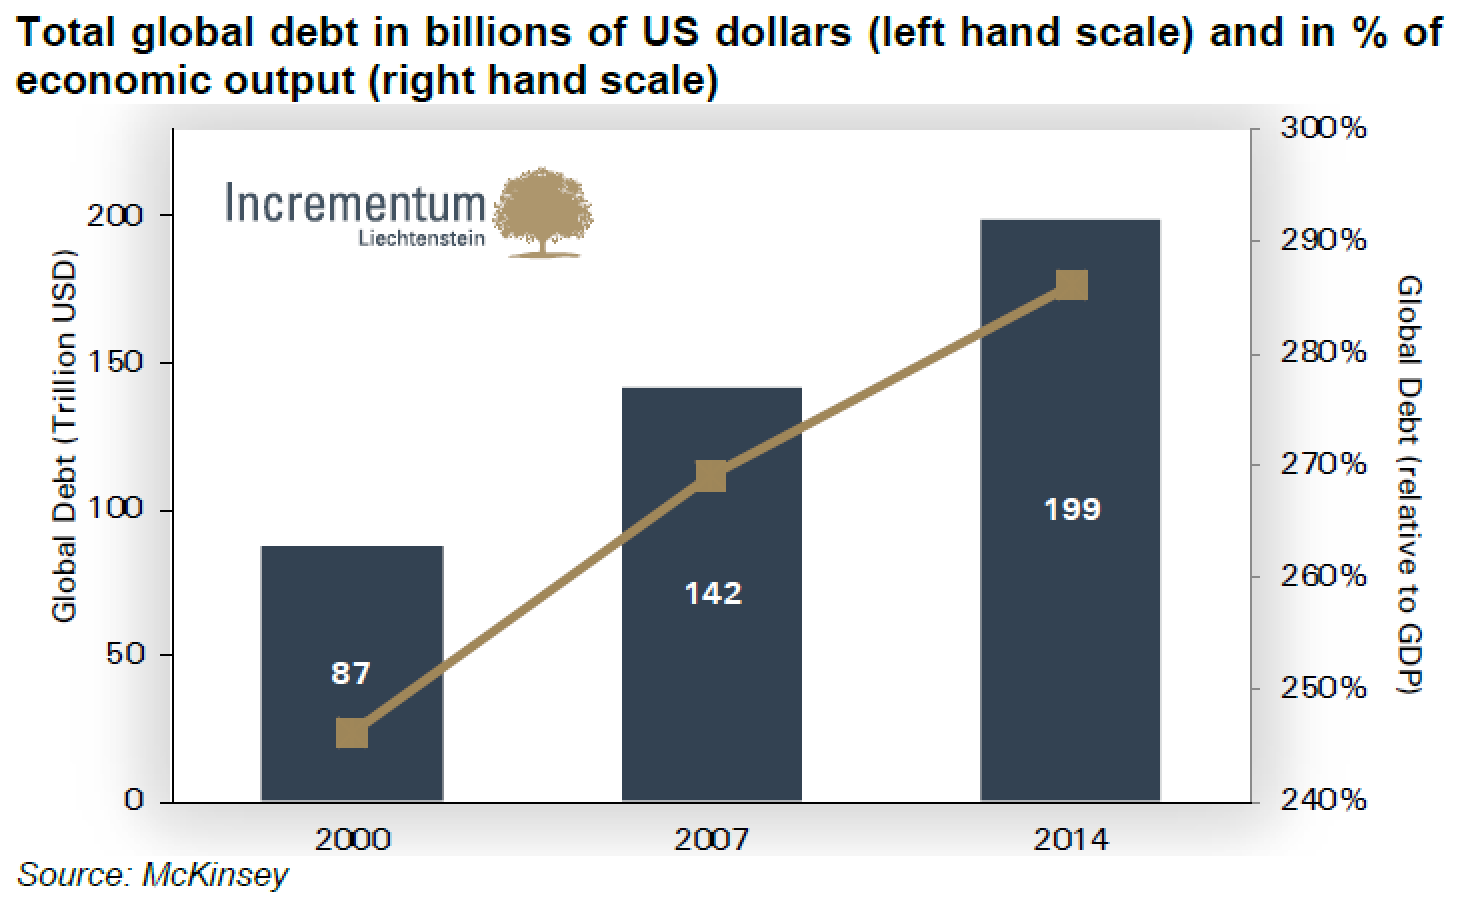 Total global debt in billions of US dollars and in percentage of economic output